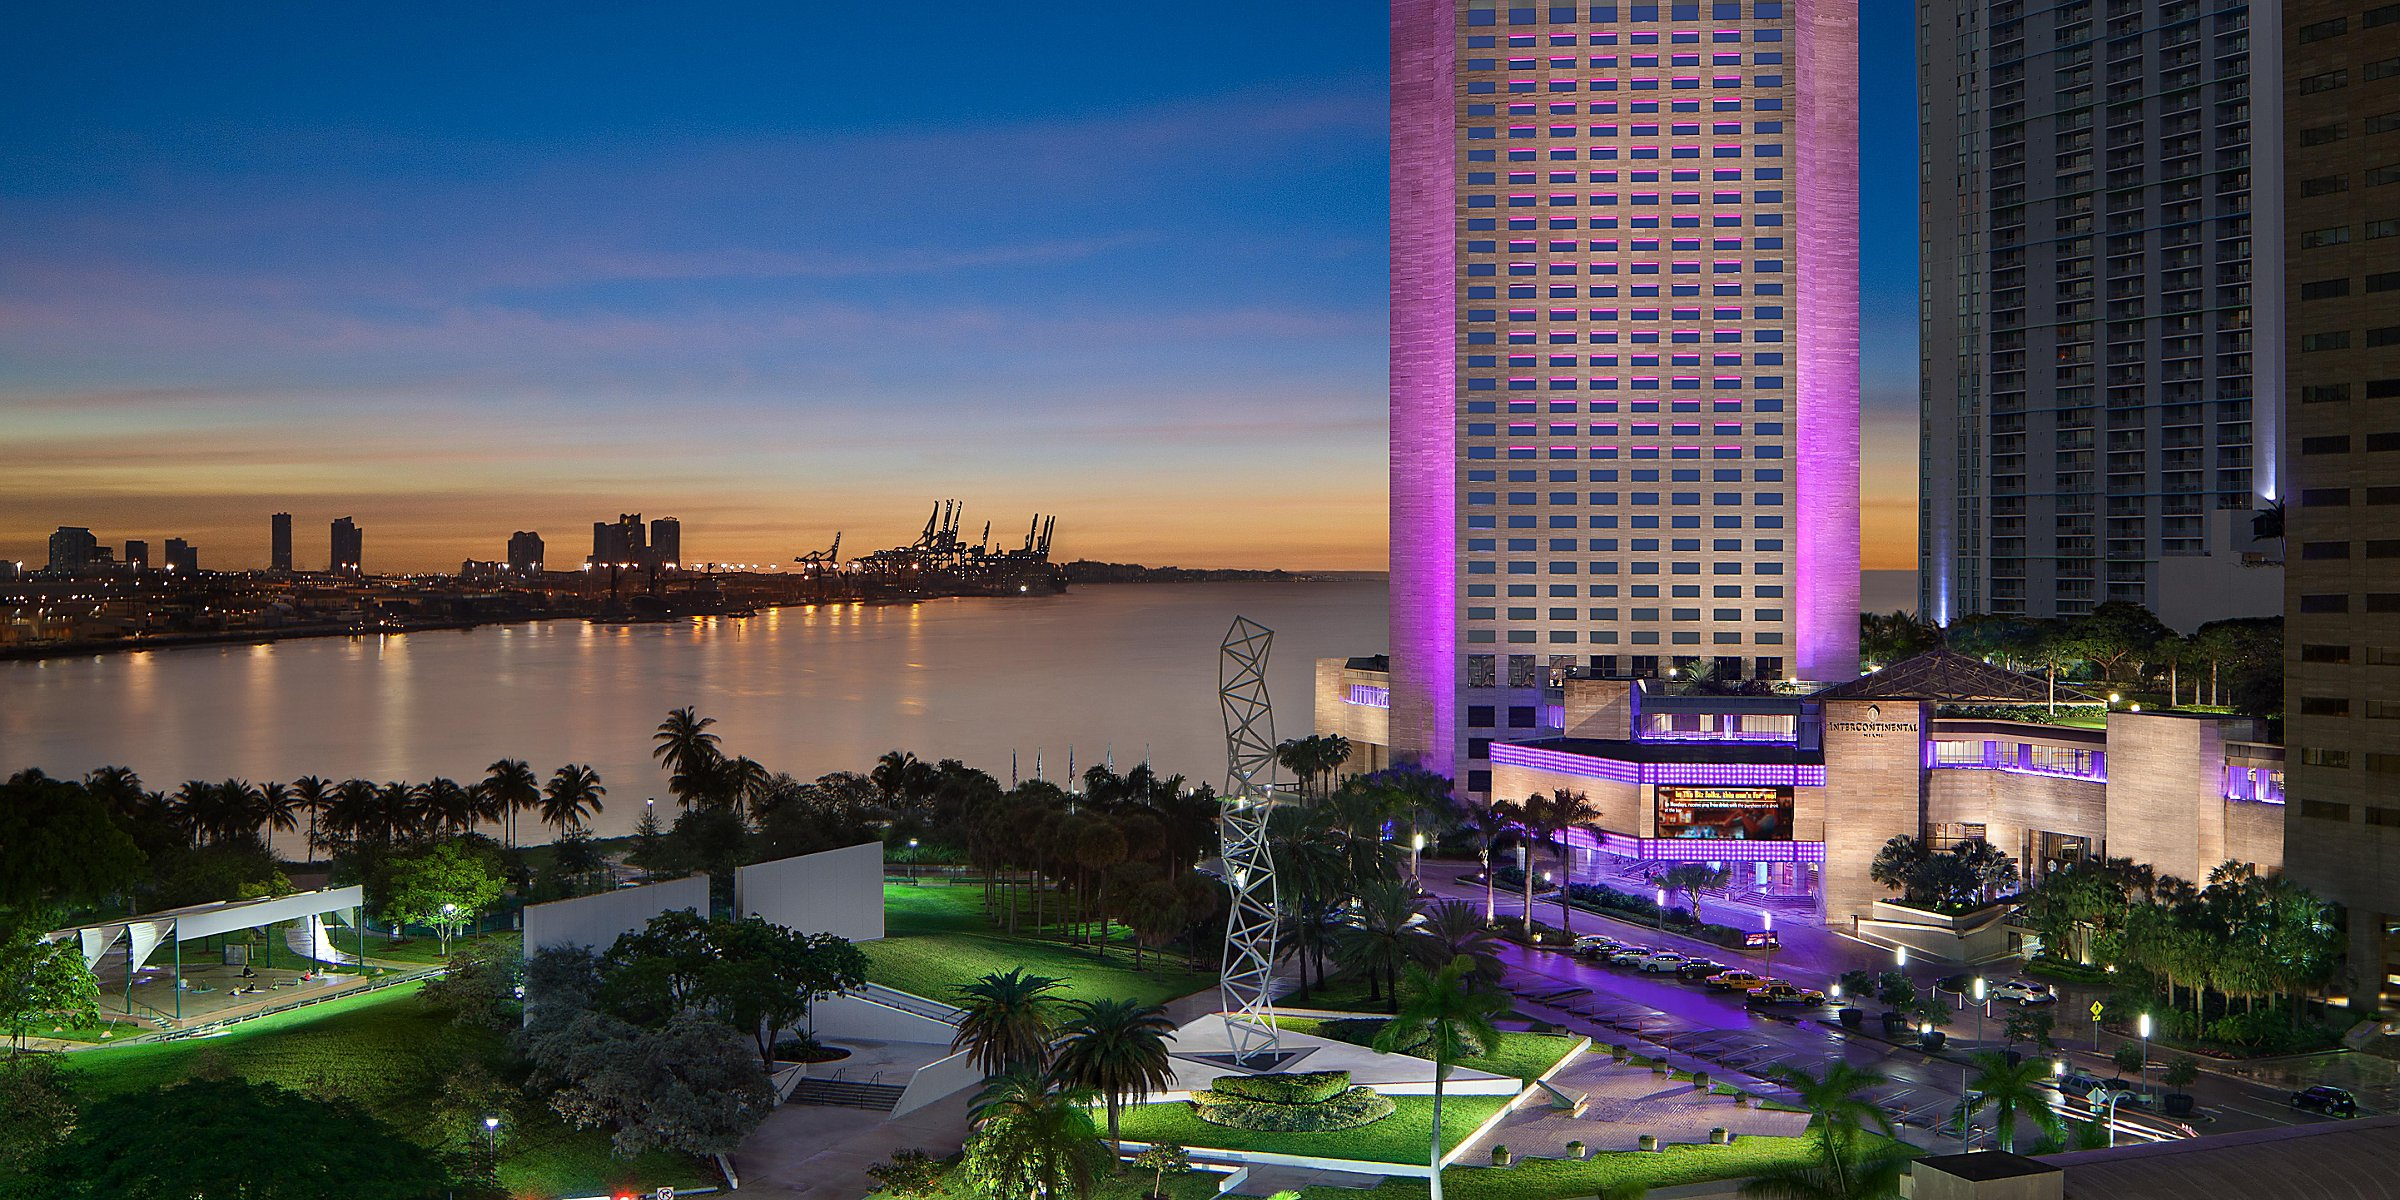 Hotels In Miami That Allow Smoking